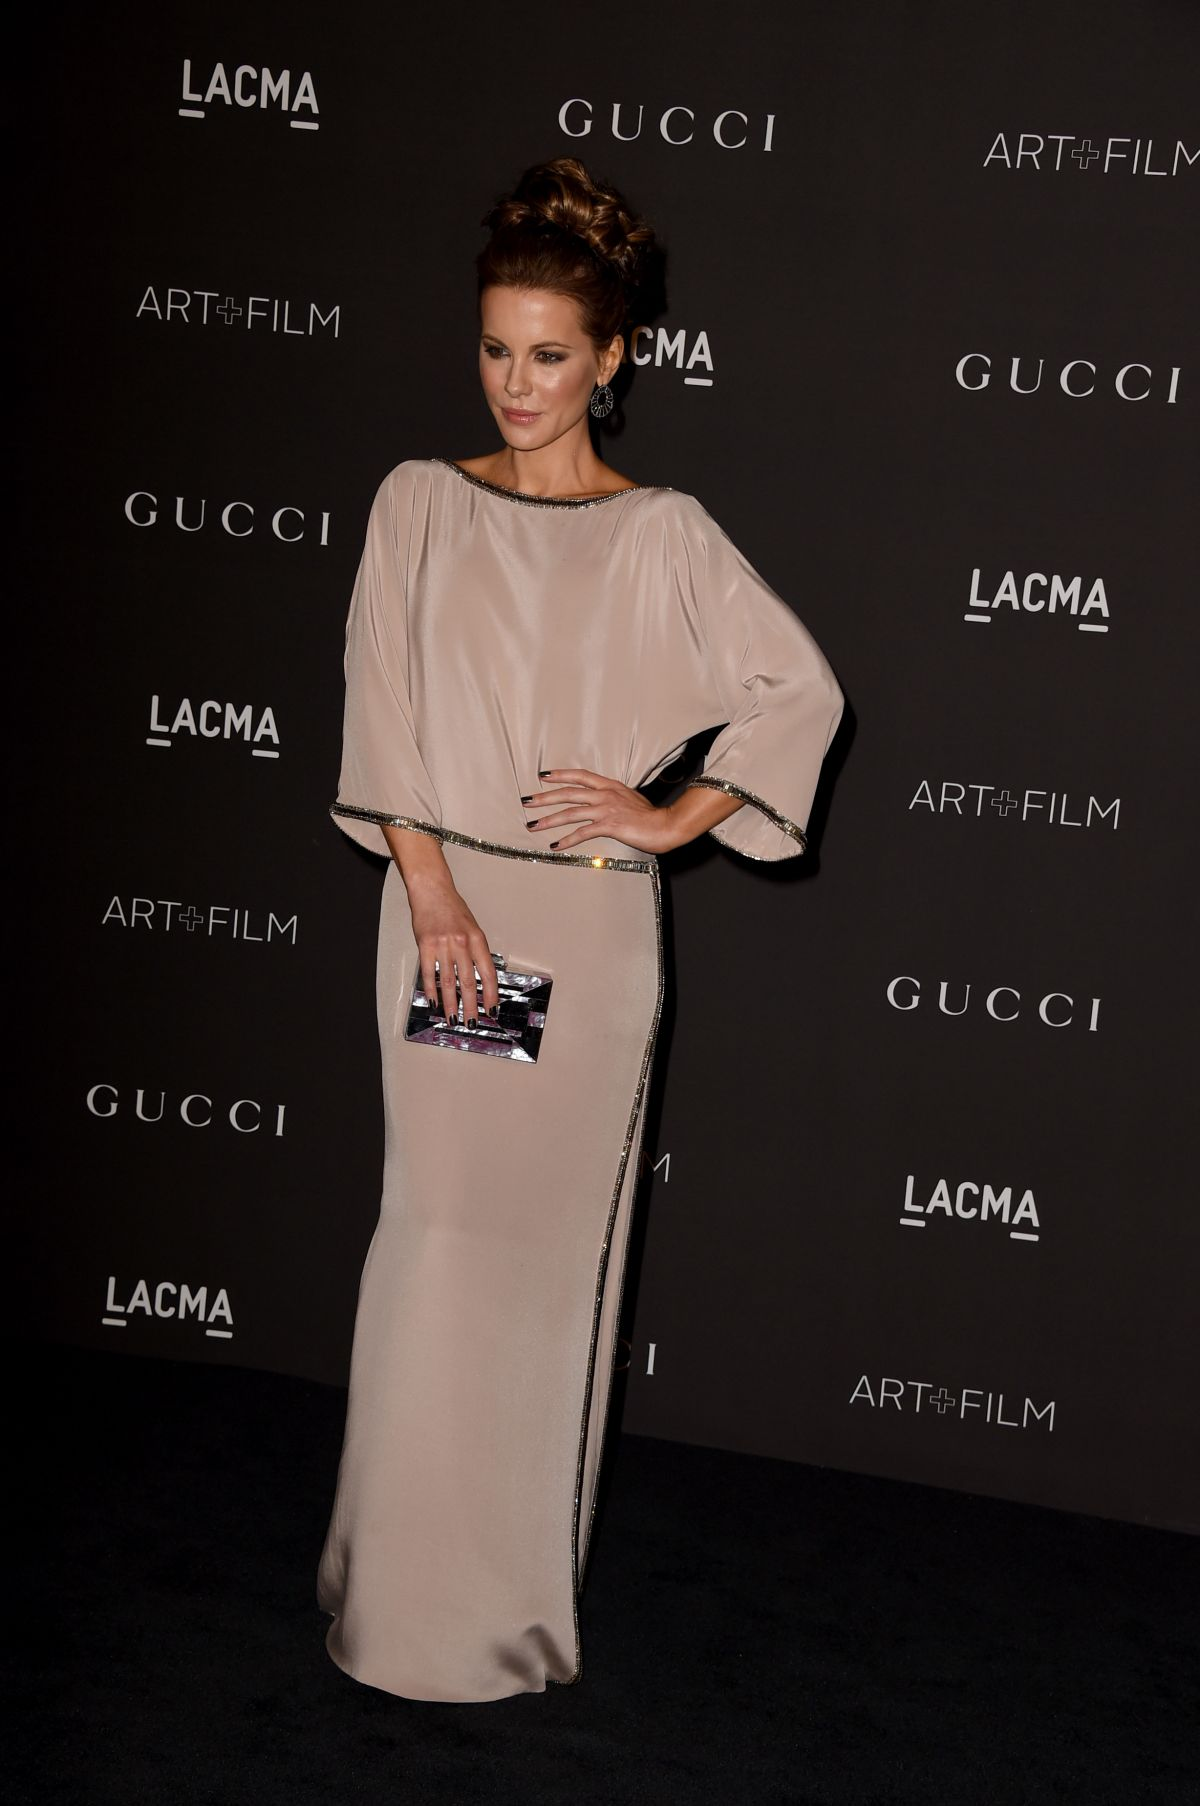 kate-beckinsale-at-2014-lacma-art-film-gala-in-los-angeles_6